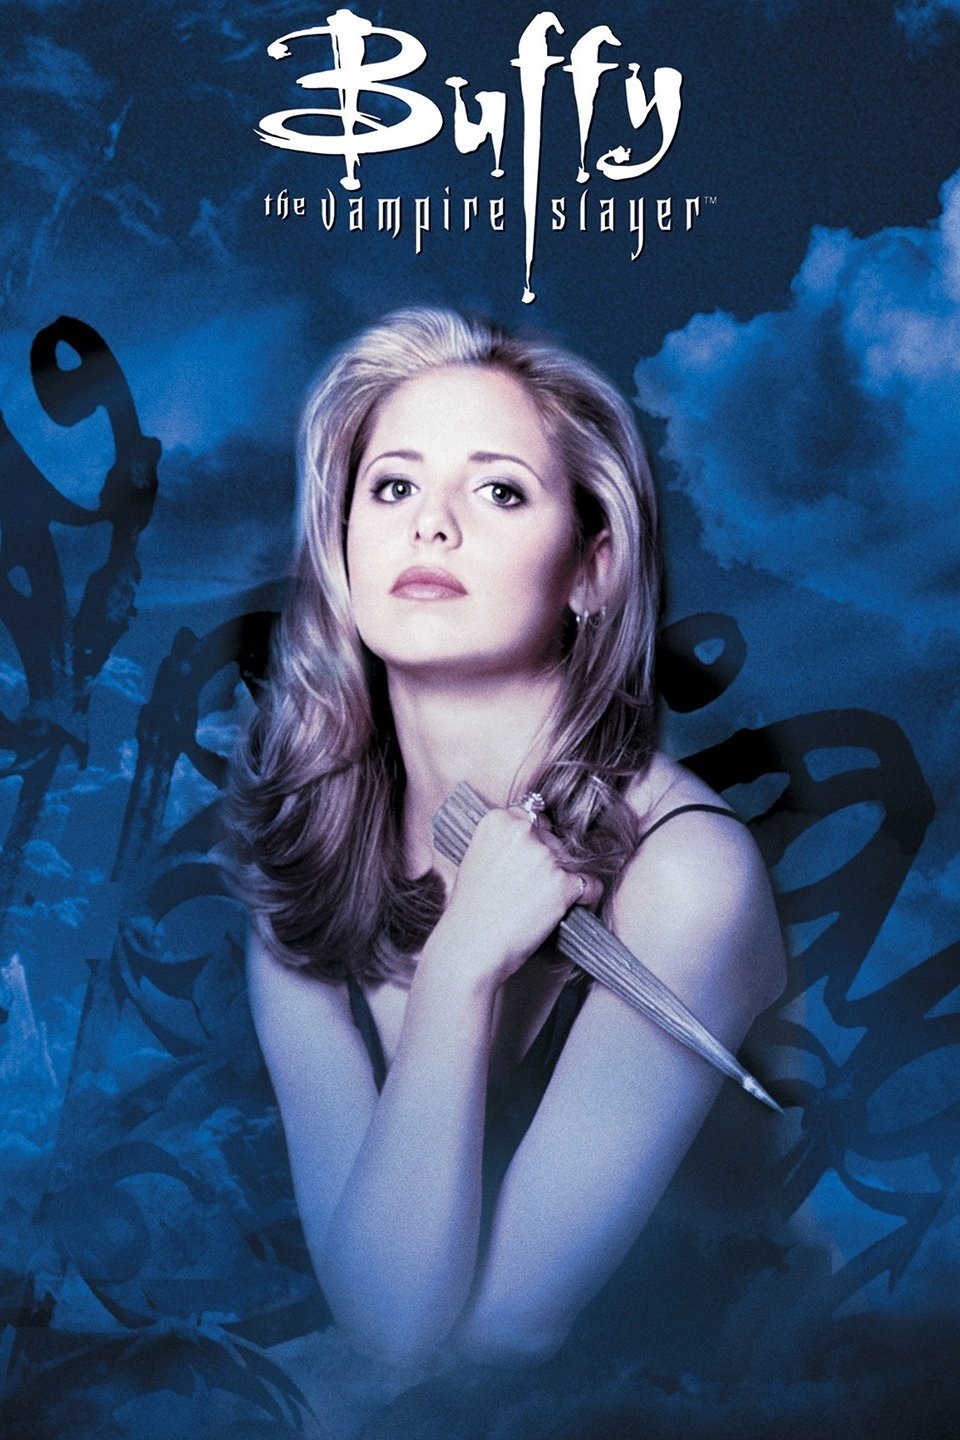 Buffy The Vampire Slayer, Season 1